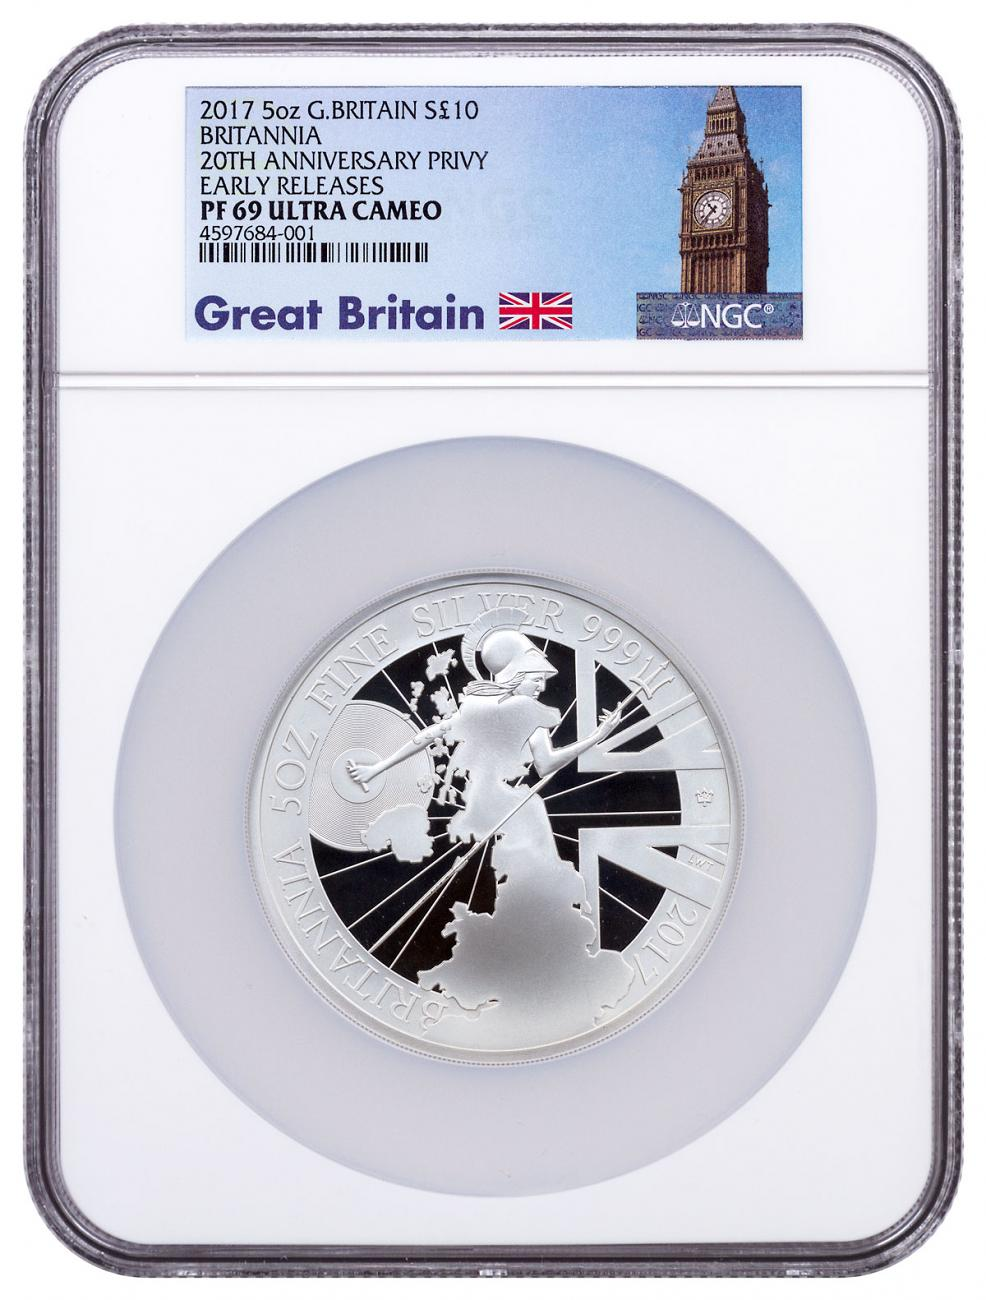 2017 Great Britain 5 oz Silver Britannia - 20th Anniversary Trident Privy Proof £10 Coin NGC PF69 UC ER Exclusive Big Ben Label